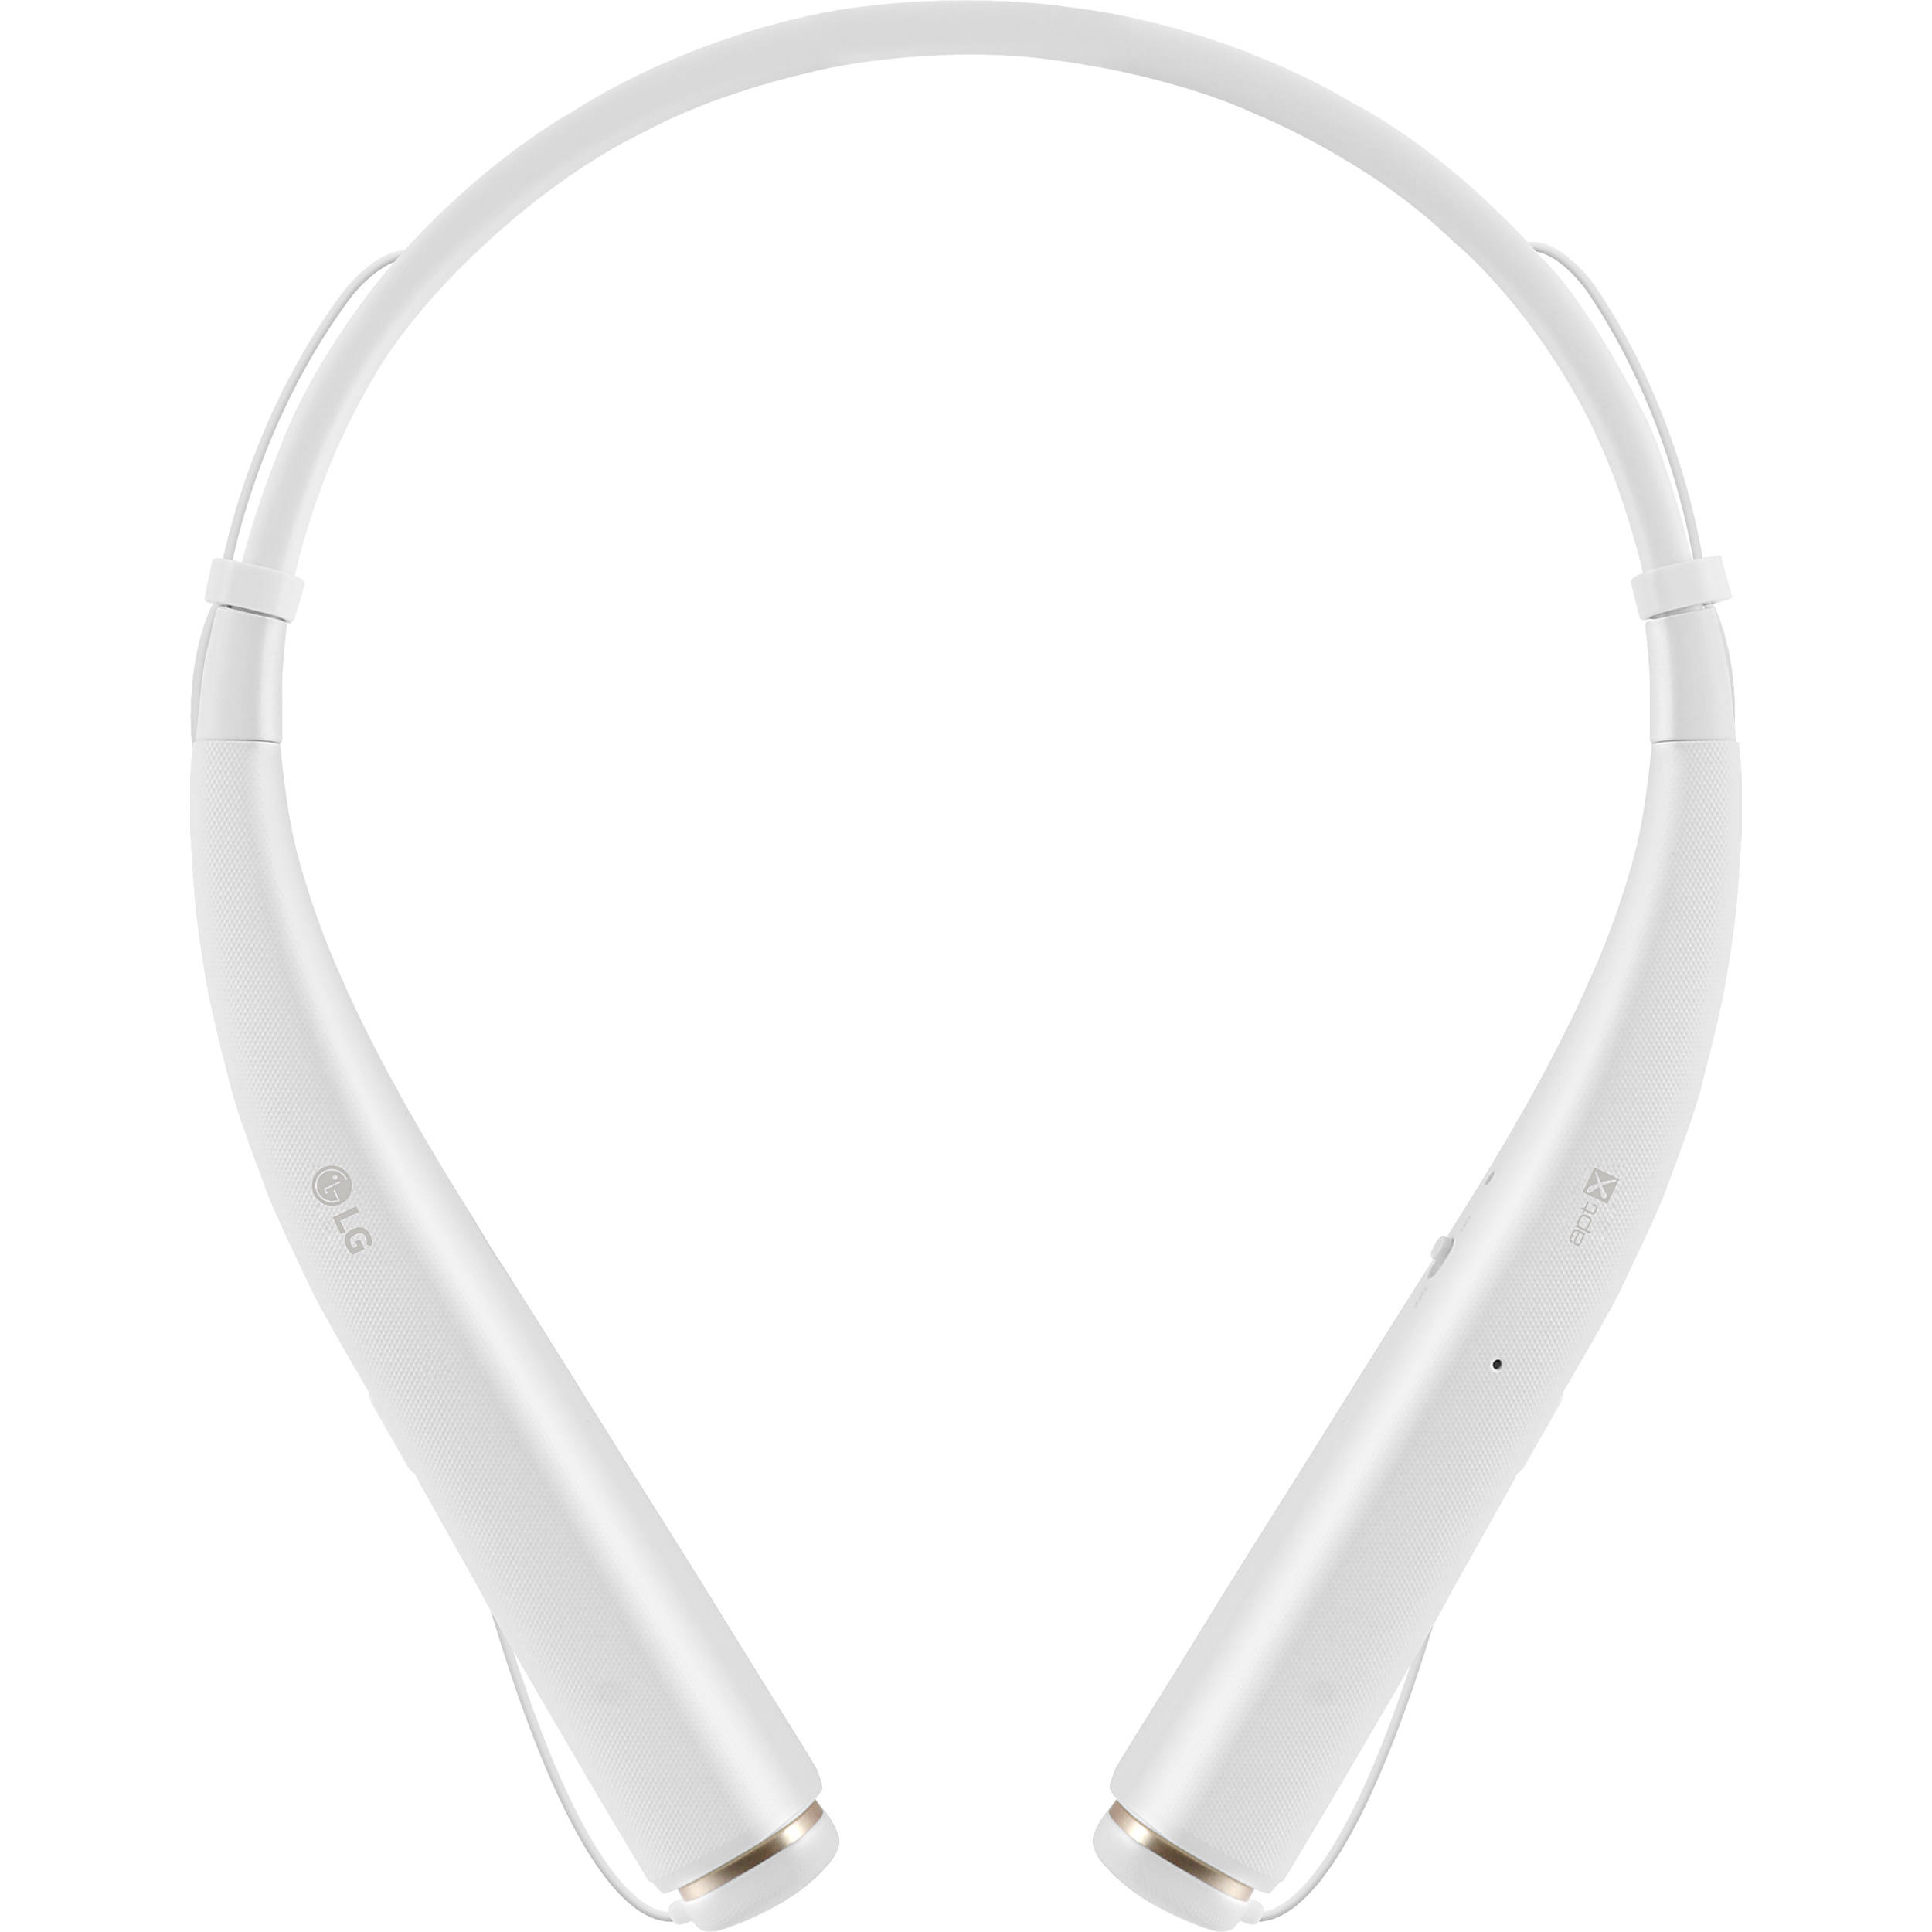 715911a8a64 LG HBS-780 TONE PRO Bluetooth Wireless Stereo Headset (White)